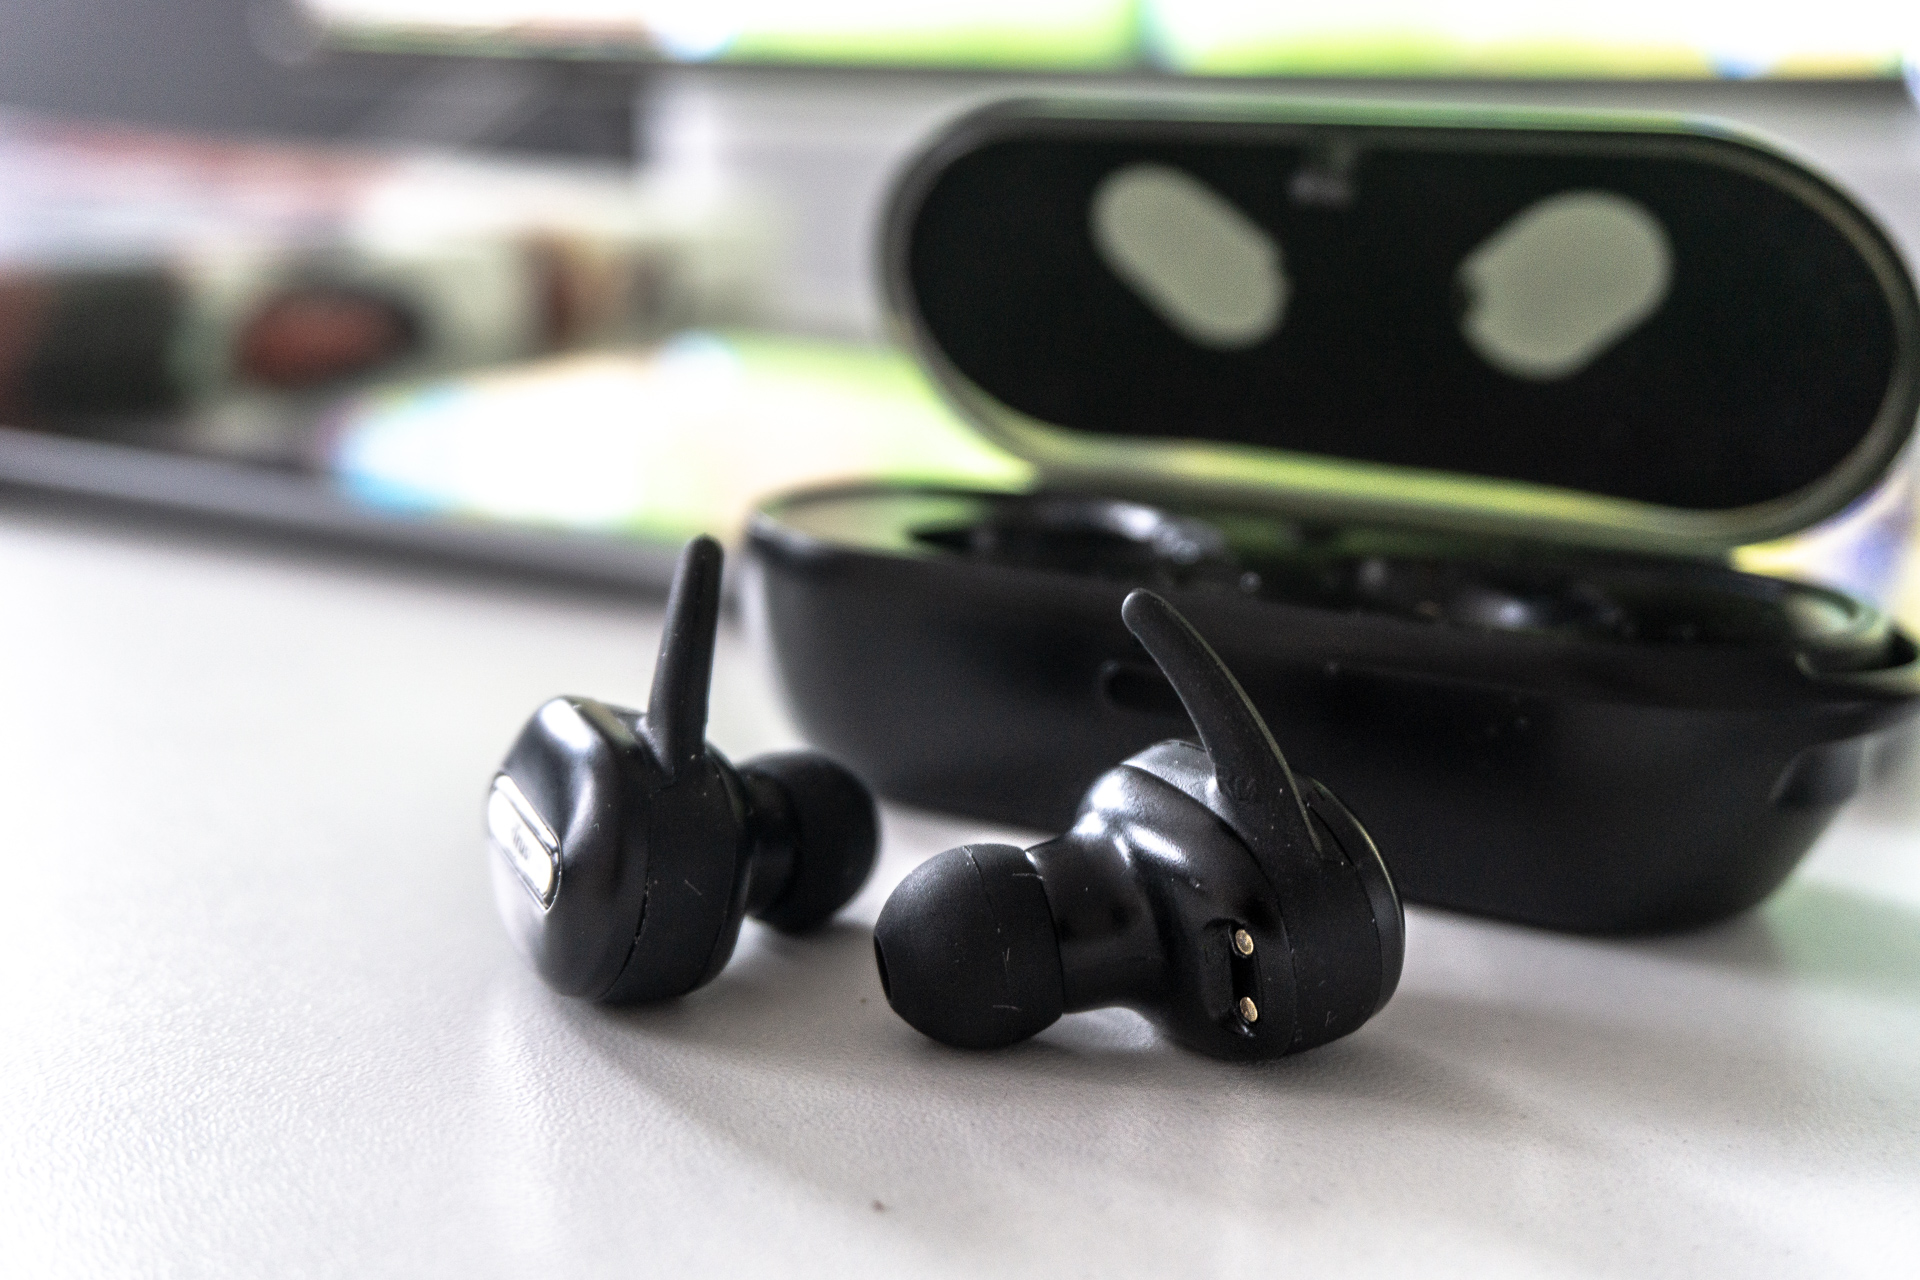 Trust Duet 2 is a cheap, wireless earphones with a charging case - a review